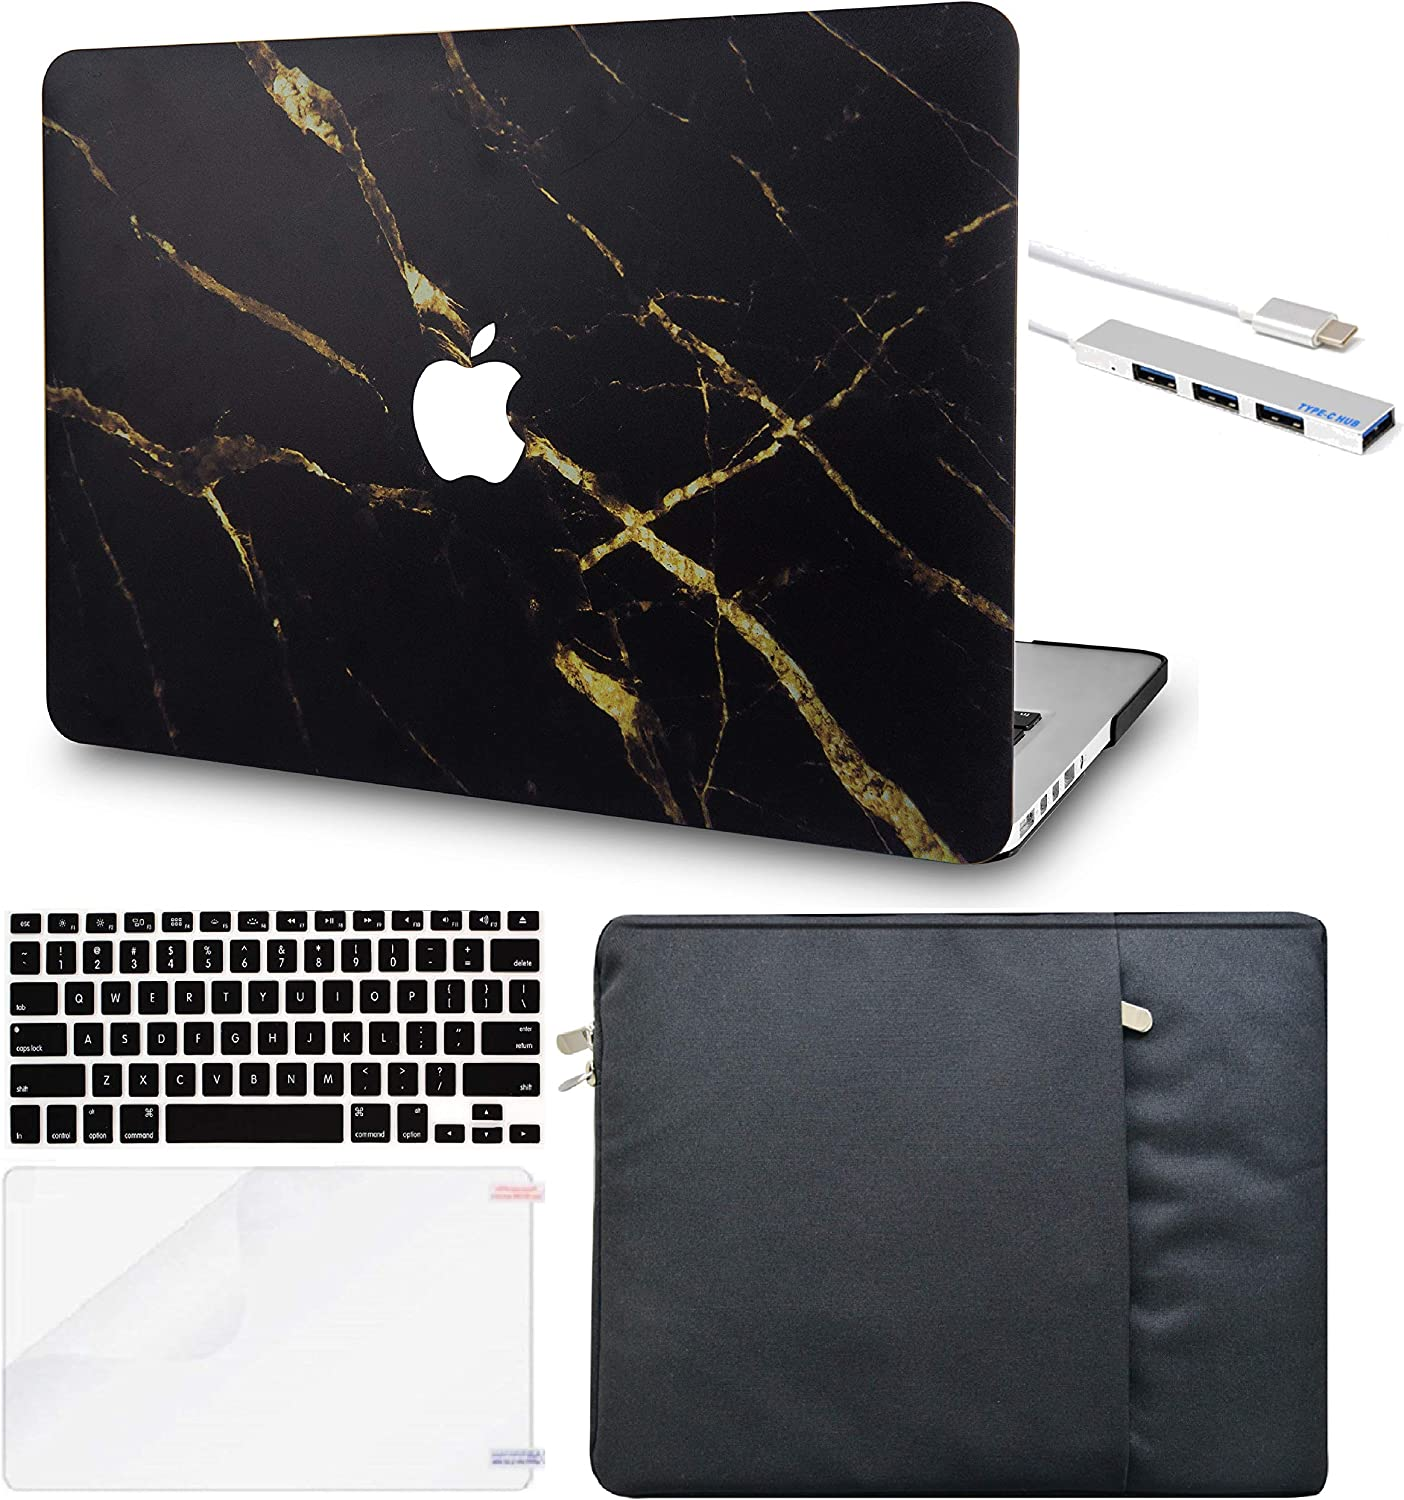 "LuvCase 5in1 Laptop Case for MacBook Pro 13""(2020) with Touch Bar A2251/A2289 Hard Shell Cover, Sleeve, USB Hub 3.0, Keyboard Cover&Screen Protector (Black Gold Marble)"